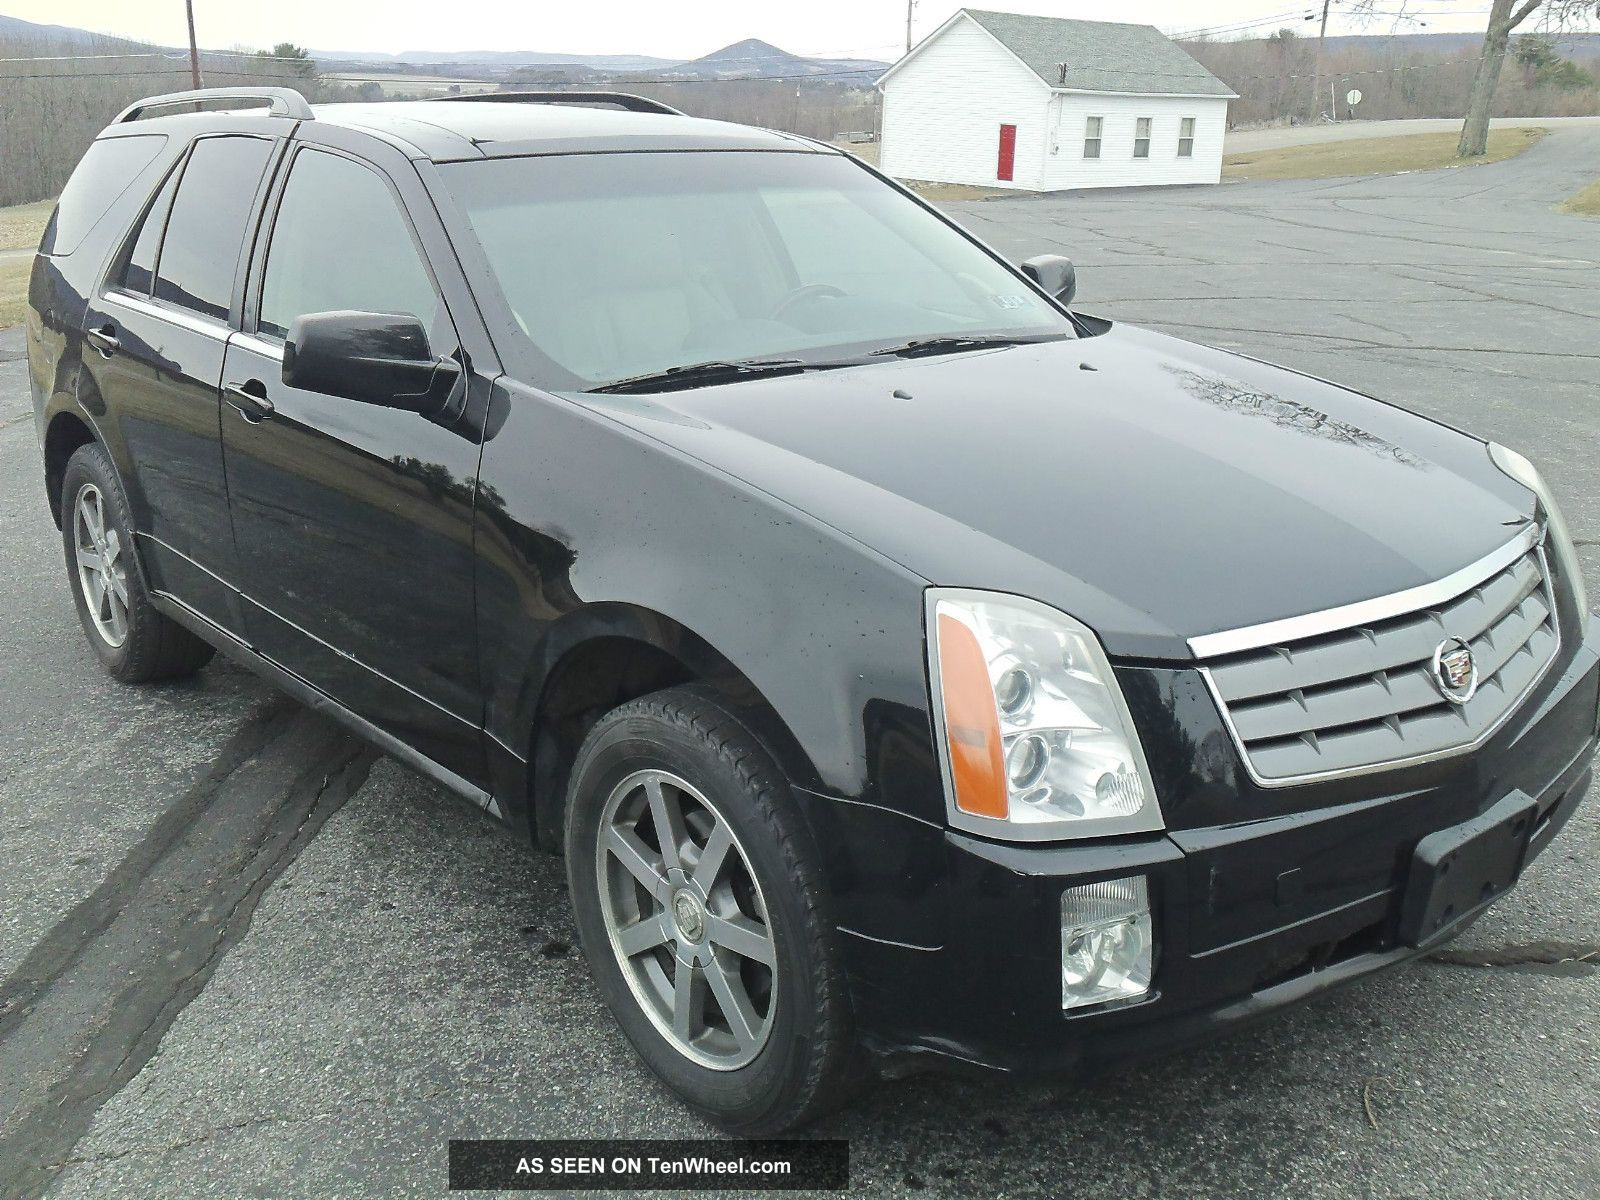 owners manual for 2004 cadillac srx. Black Bedroom Furniture Sets. Home Design Ideas